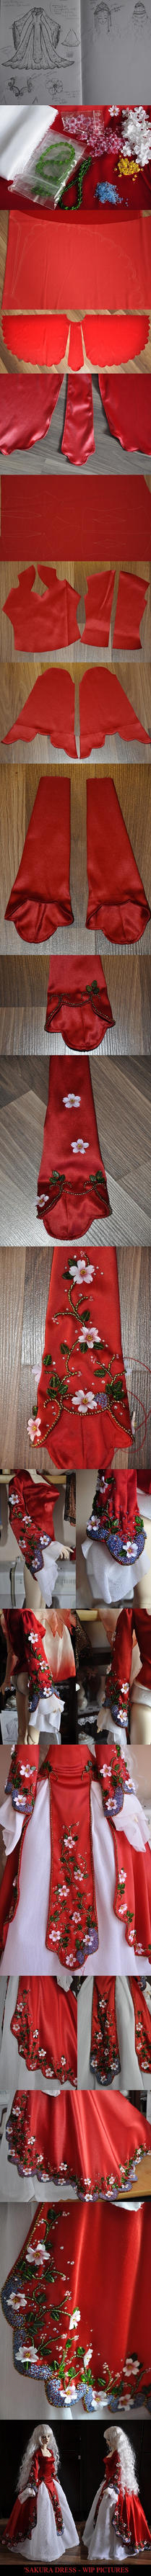 Sakura dress - WIP by mio27